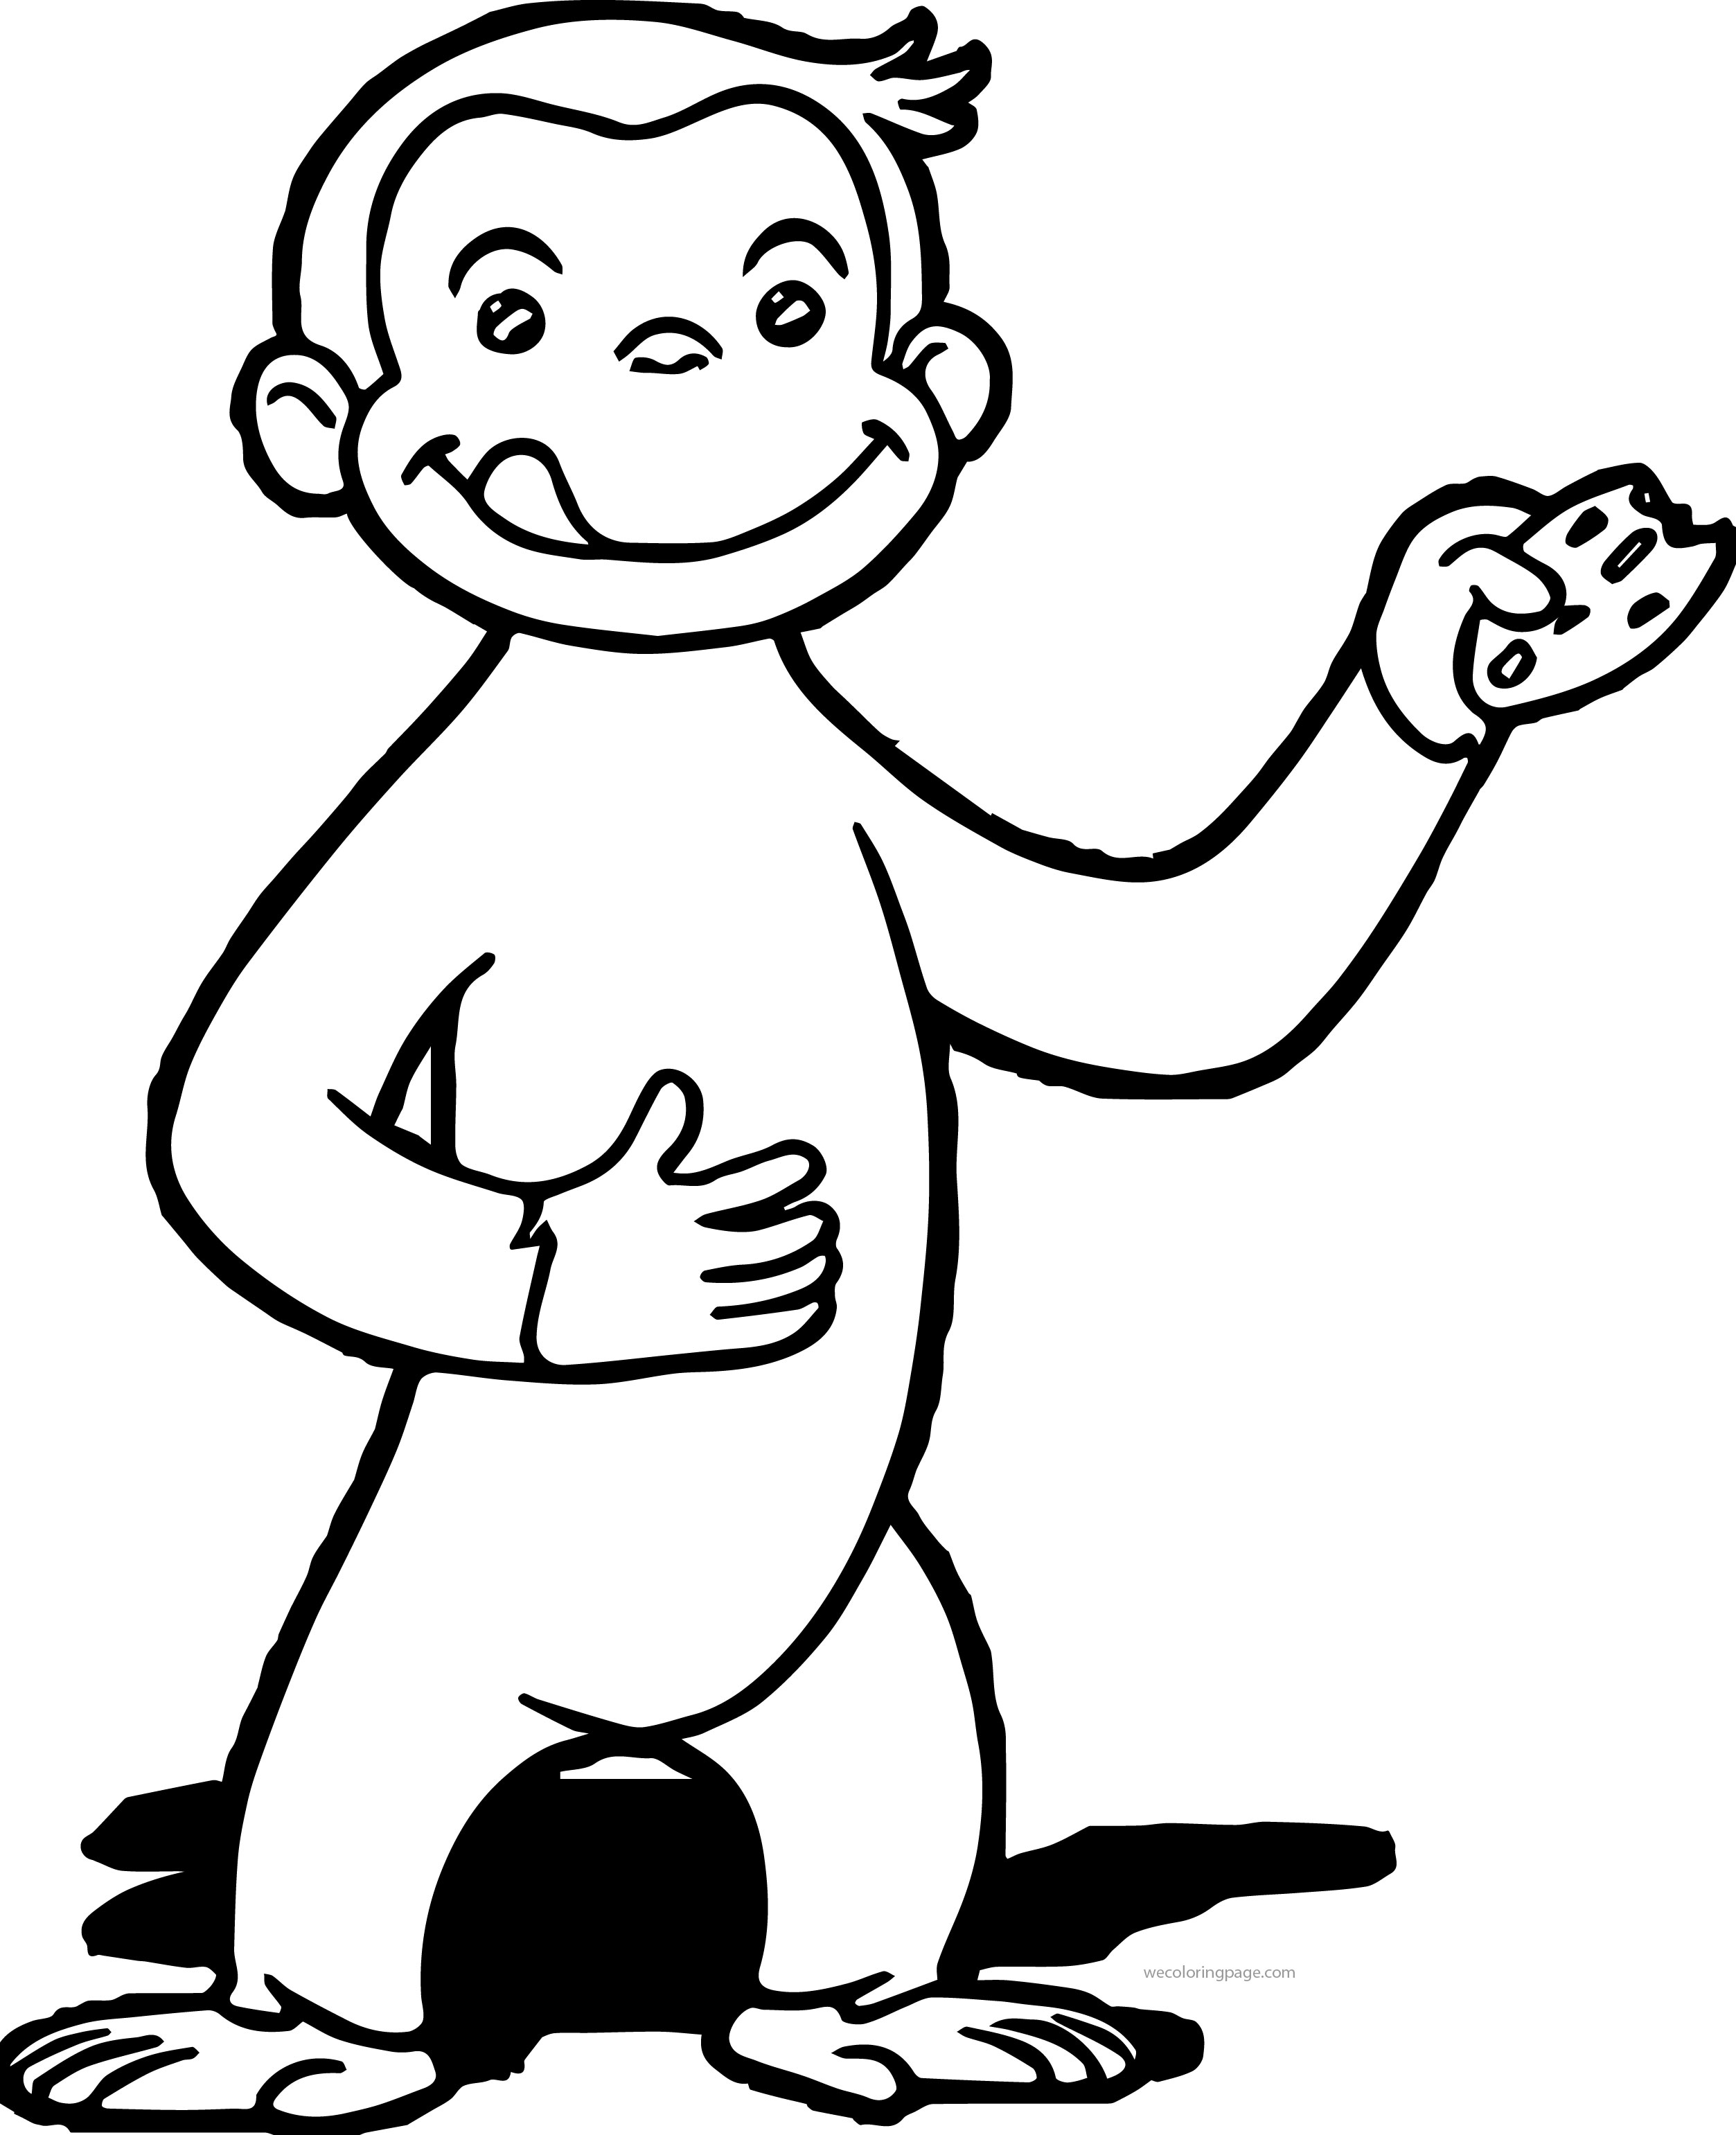 Curious George Eating Cookie Coloring Page